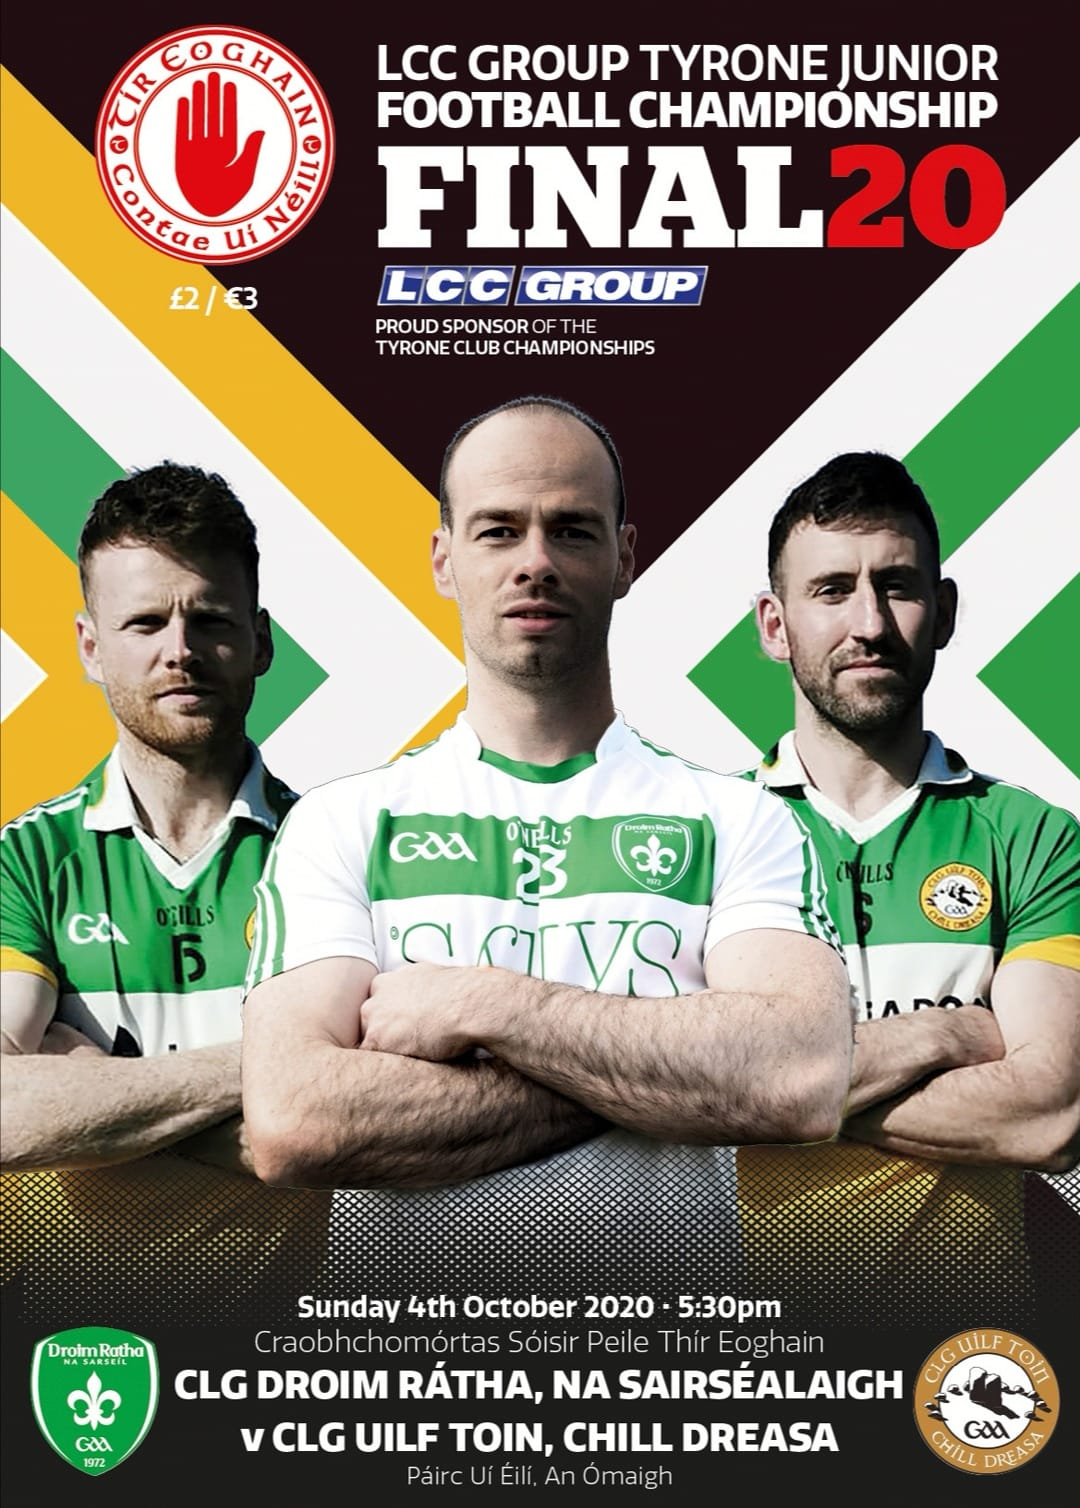 LCC Group Junior Championship Final online Digital Match Day Programme available See Link Details Below!